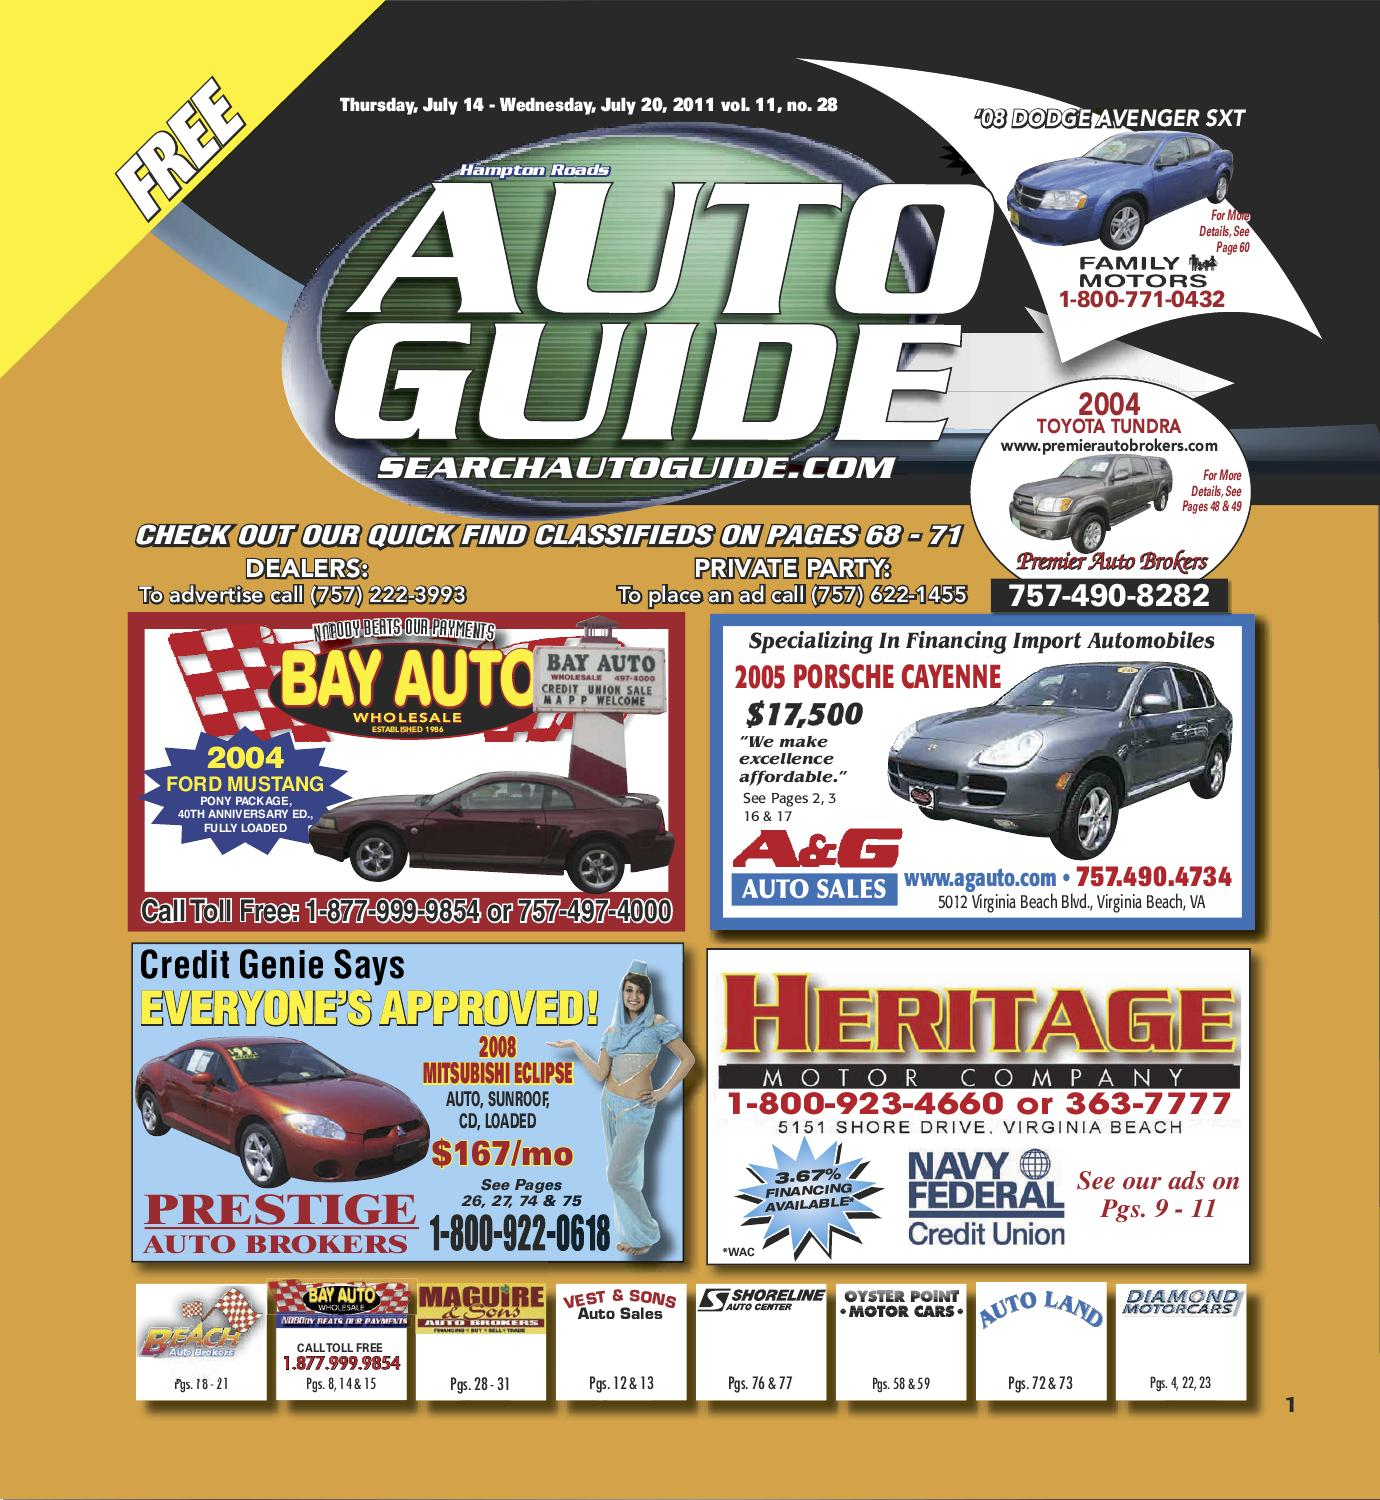 Autoguide Week of 07/14/2011 by AUTO GUIDE - issuu